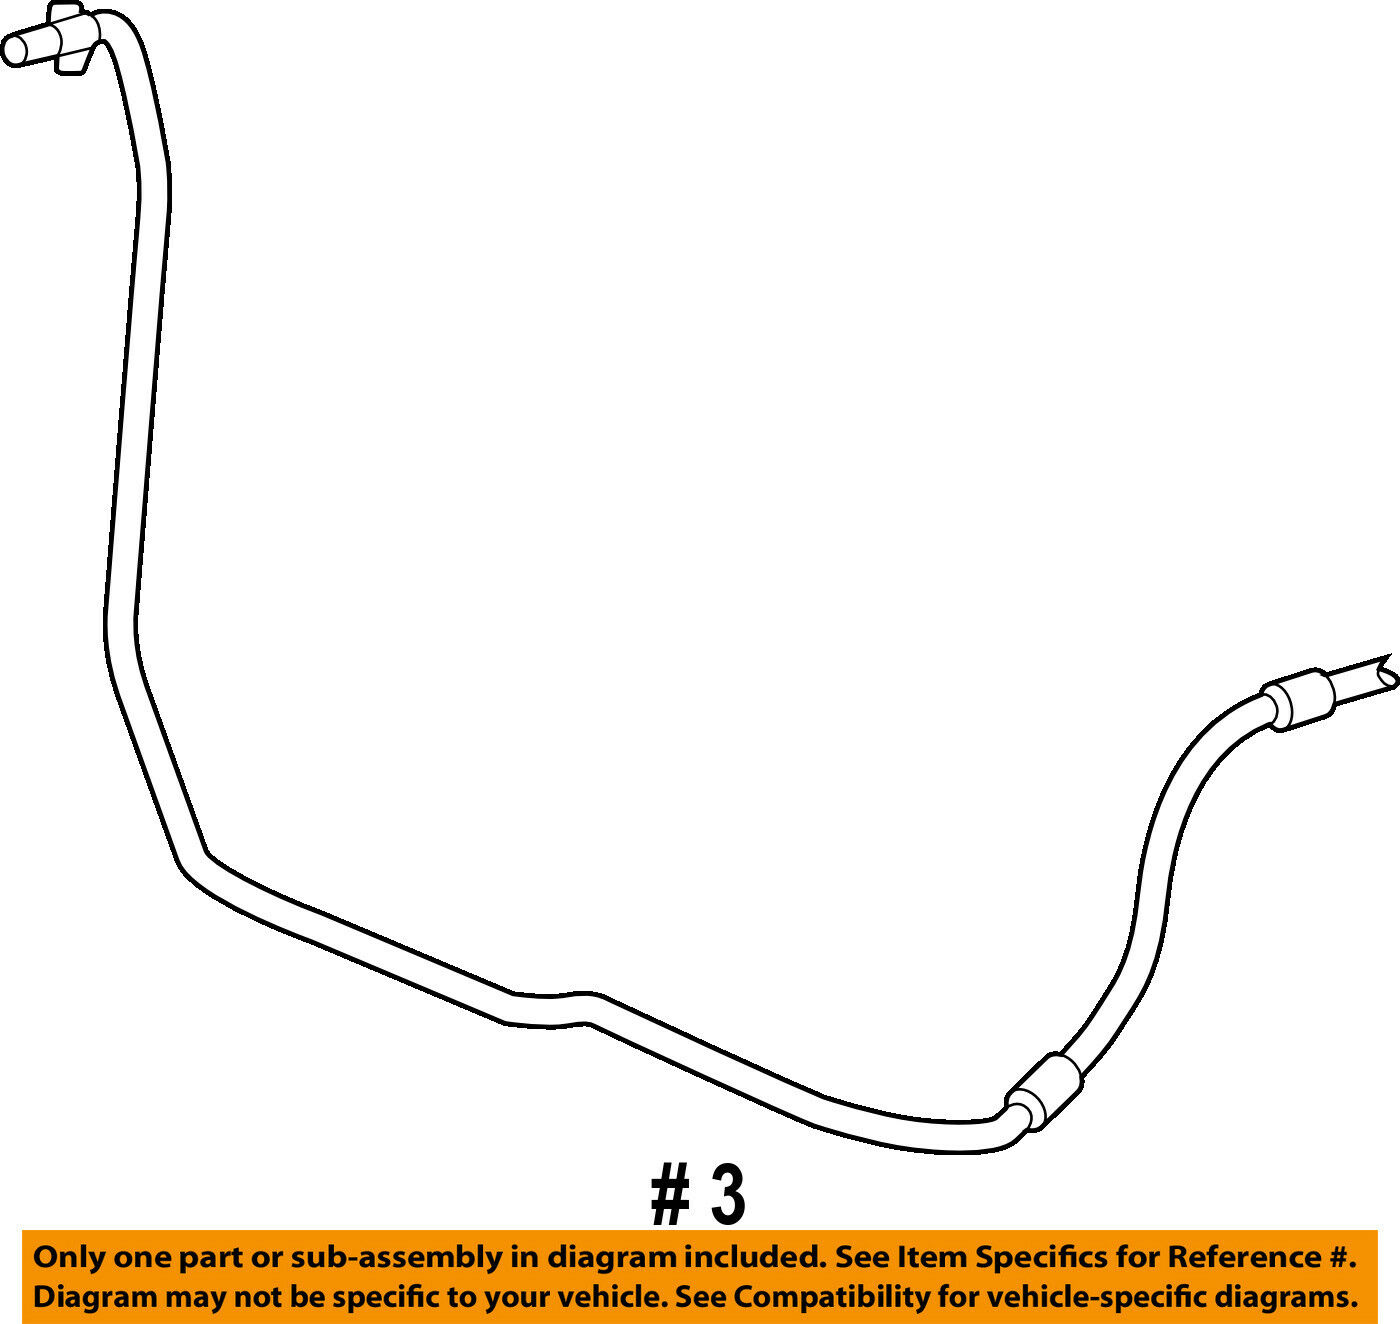 Ford Oem Transmission Oil Cooler Line 6f2z7a031a 2698 Picclick Diagrams 1 Of 2only Available